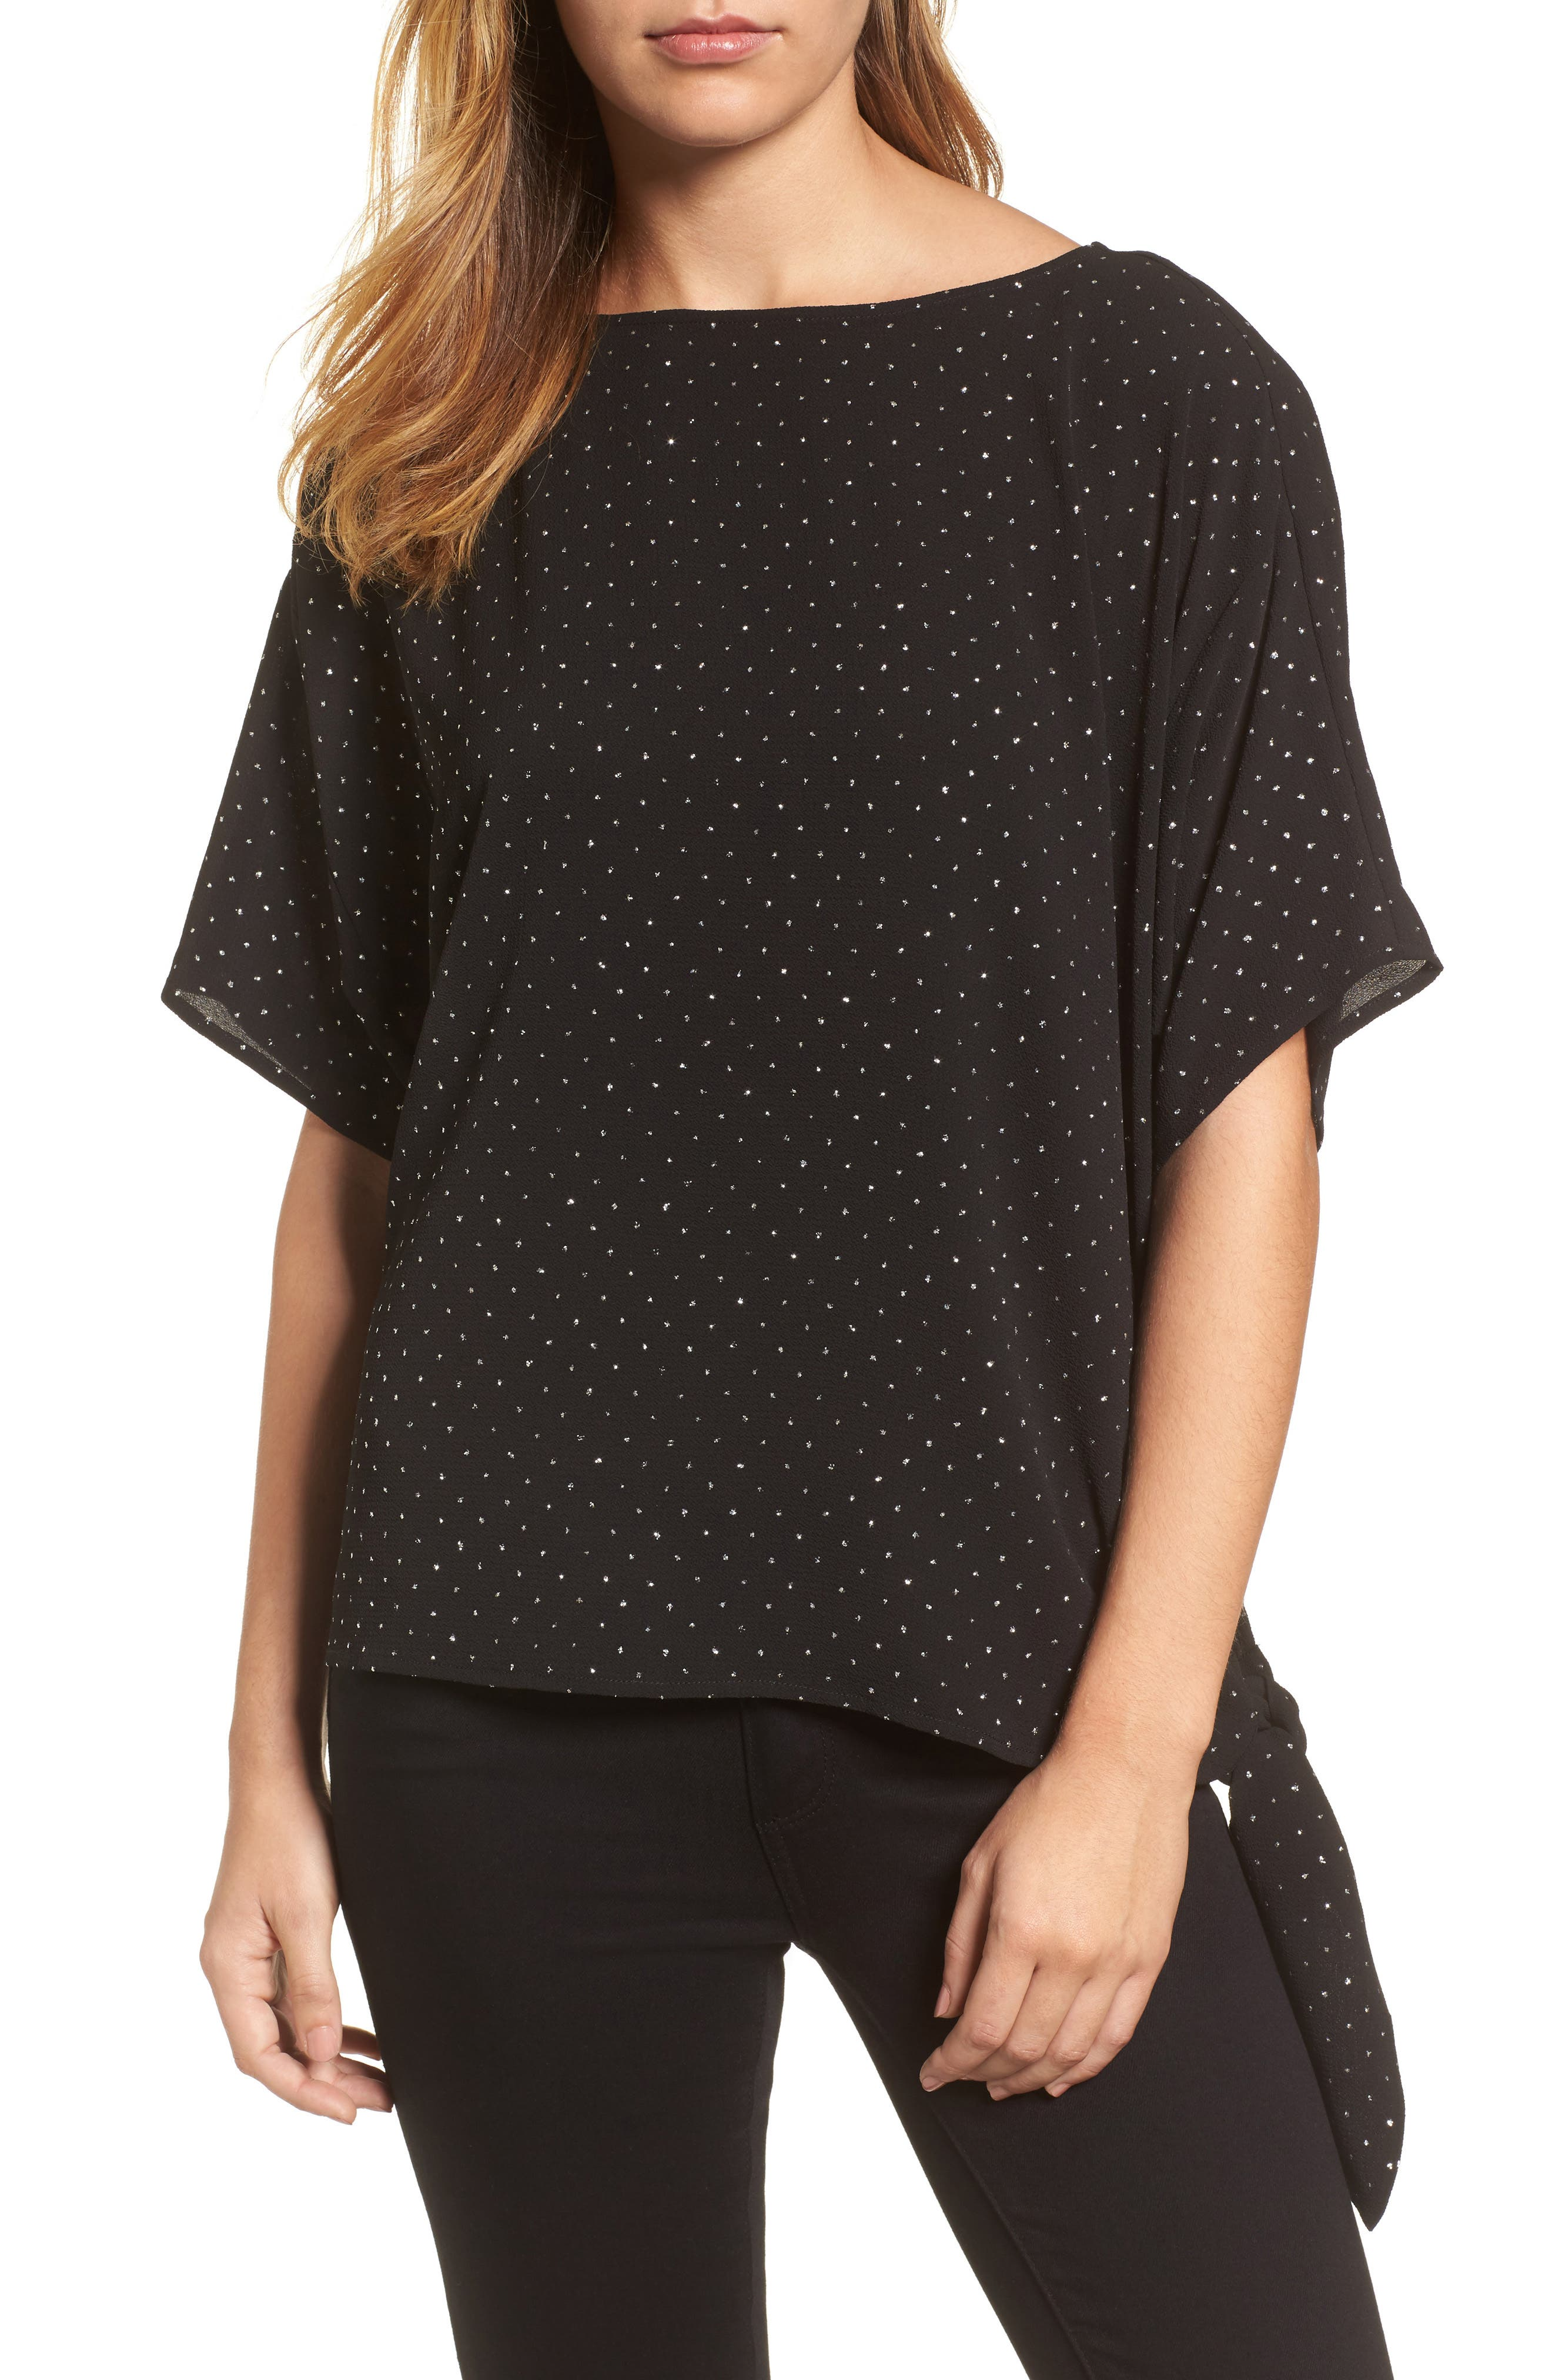 Starbright Tie Top,                             Main thumbnail 1, color,                             Black/ Silver